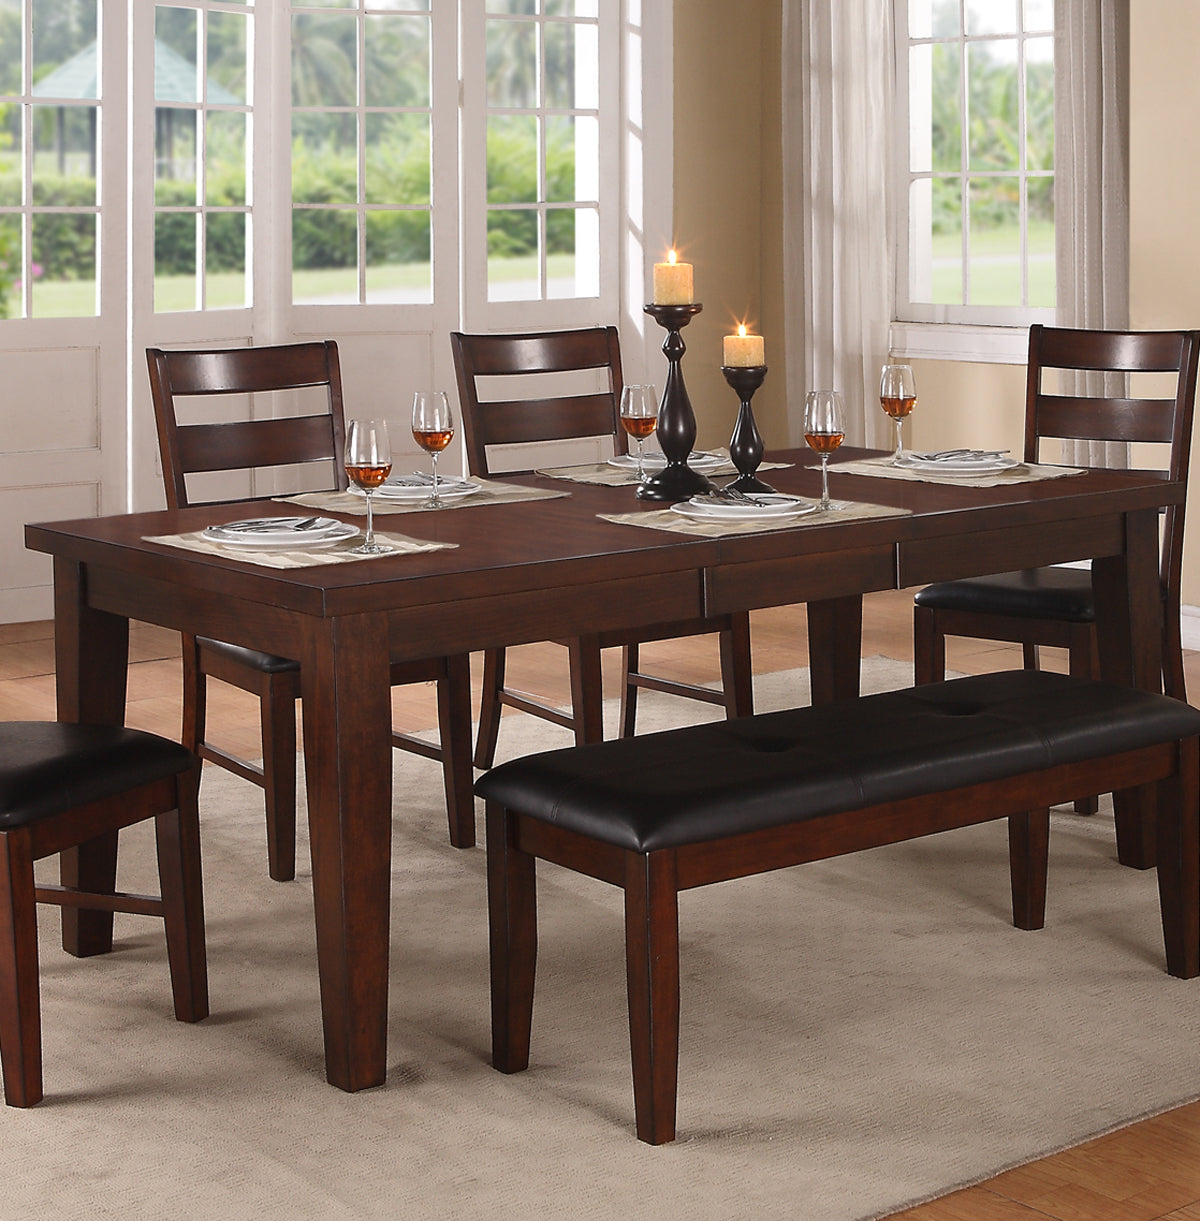 Poundex Antique Walnut Wood Finish Dining Table With Extension Leaf